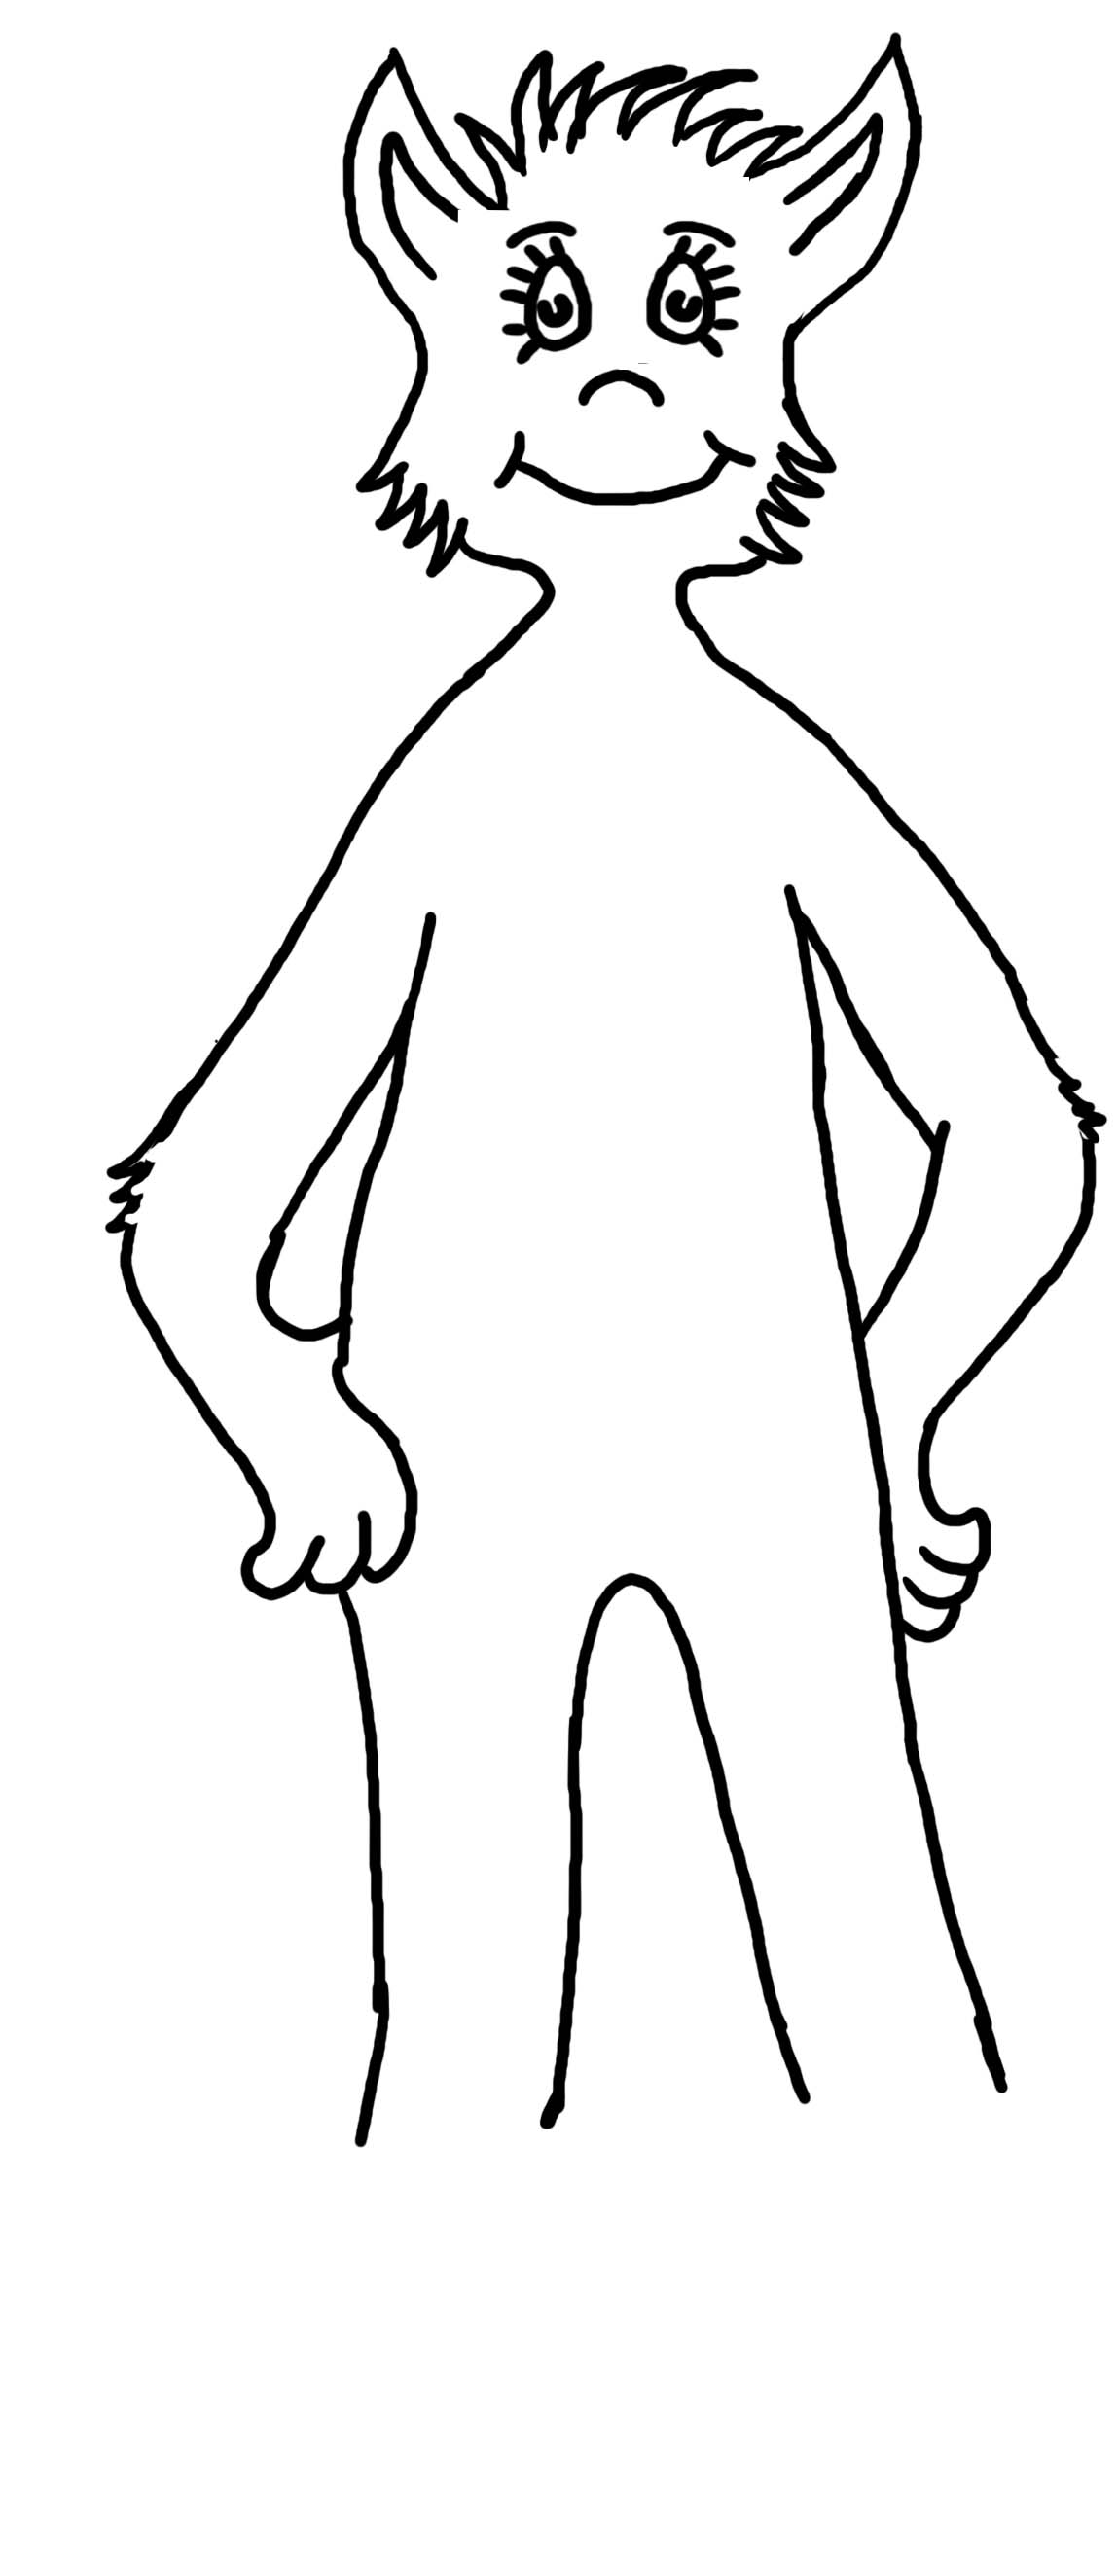 Dr Seuss Coloring Pages Foot Book.